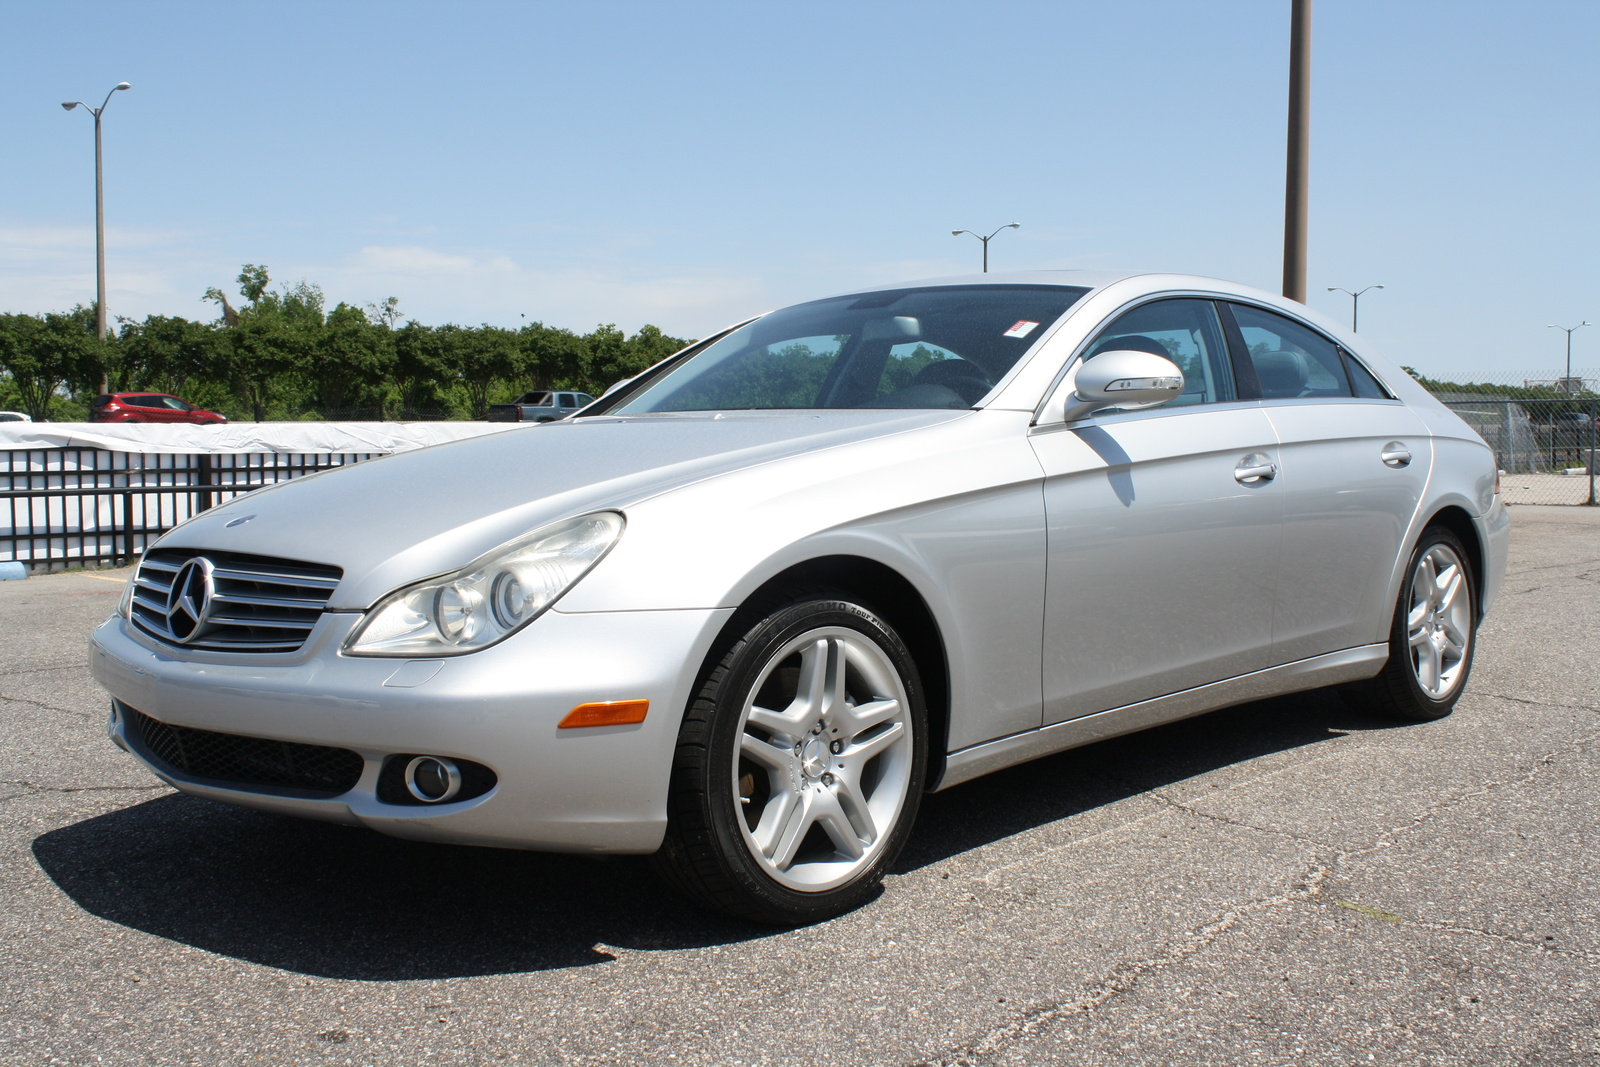 Picture of 2007 mercedes benz cls class cls550 exterior for 2007 mercedes benz s class 550